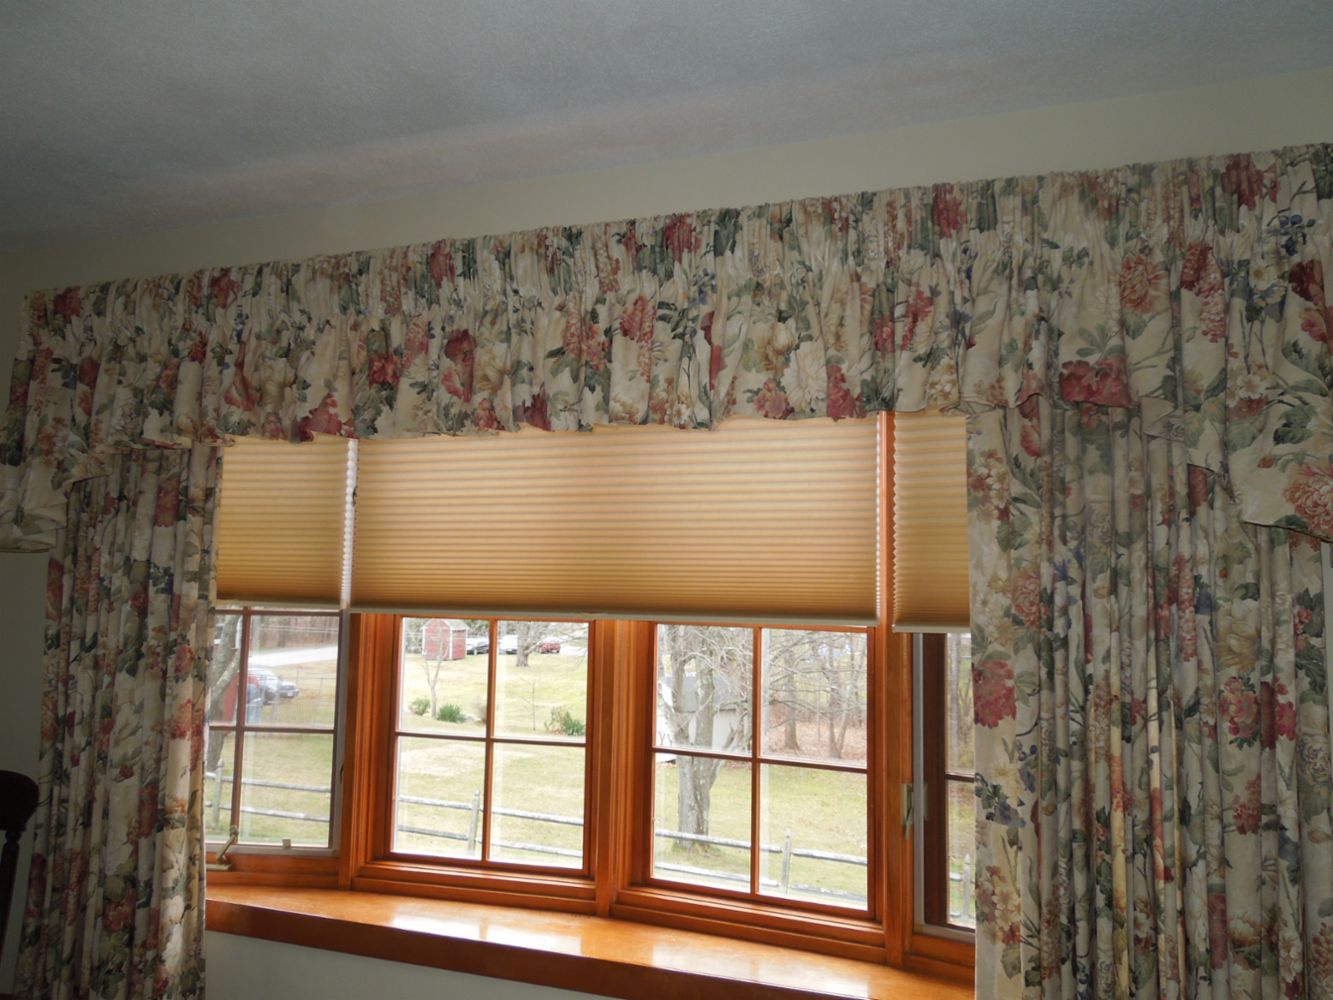 window coverings specialists in franklin ma sally s alley inc a bow window finished with hunter douglas duette architella shades